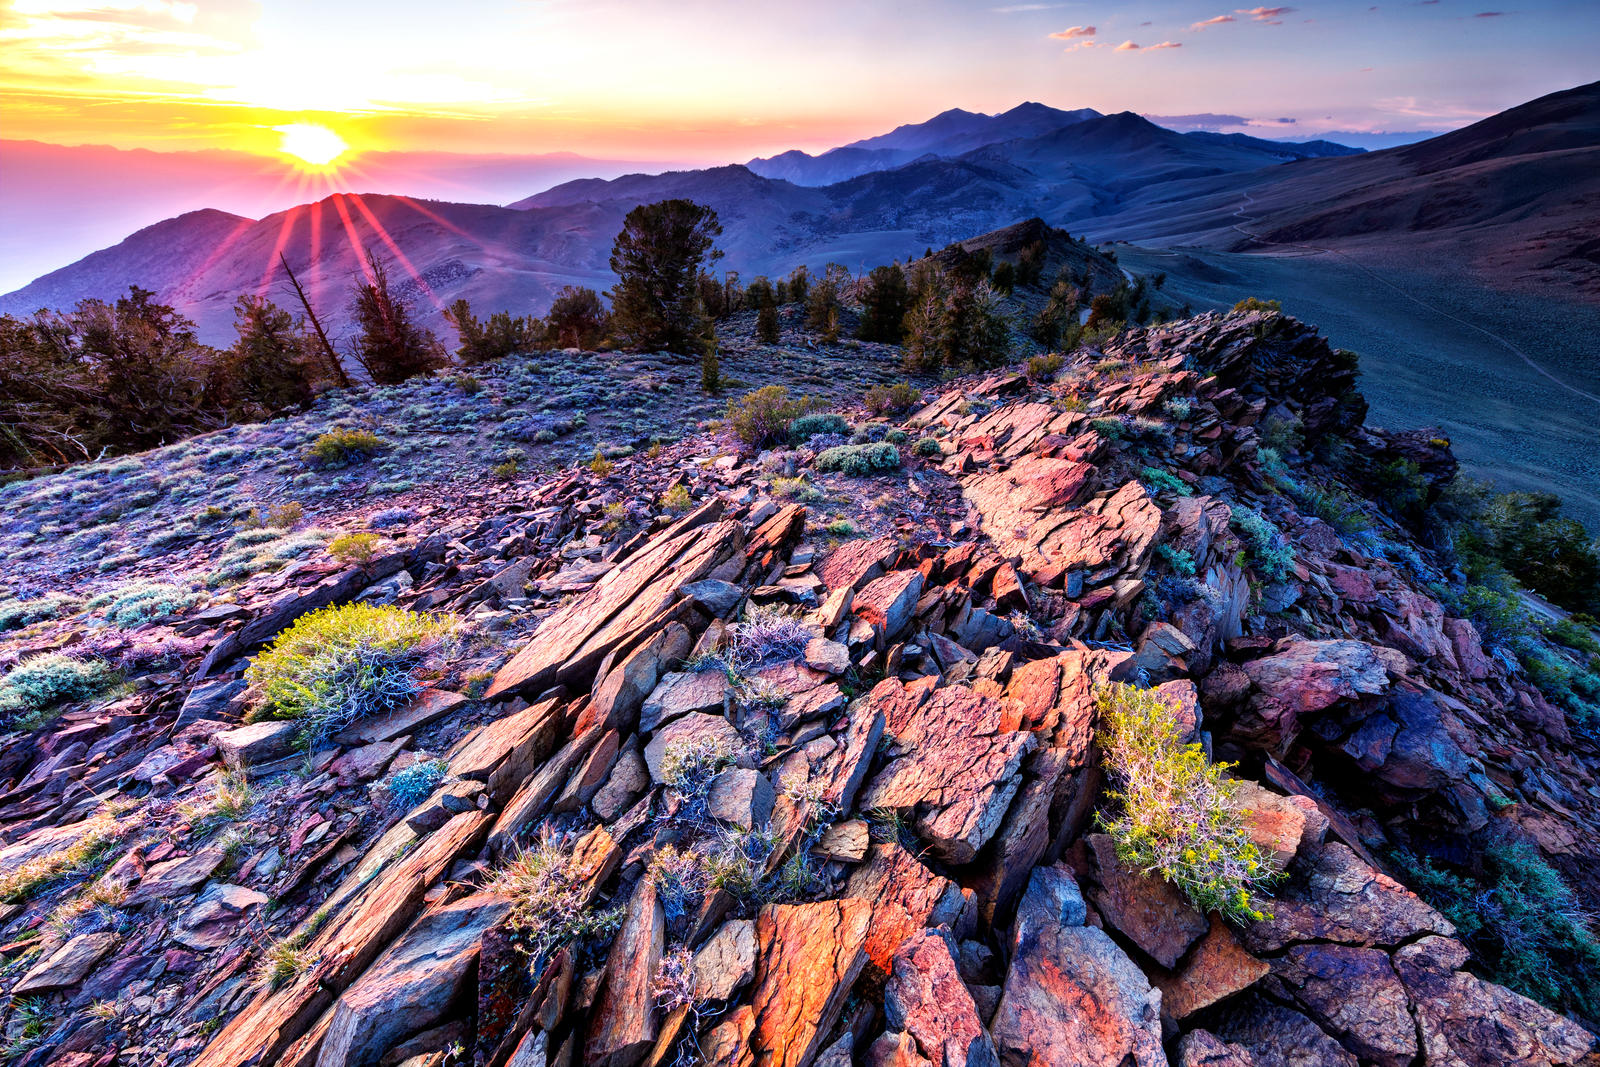 Evening in the White Mountains, California by sellsworth